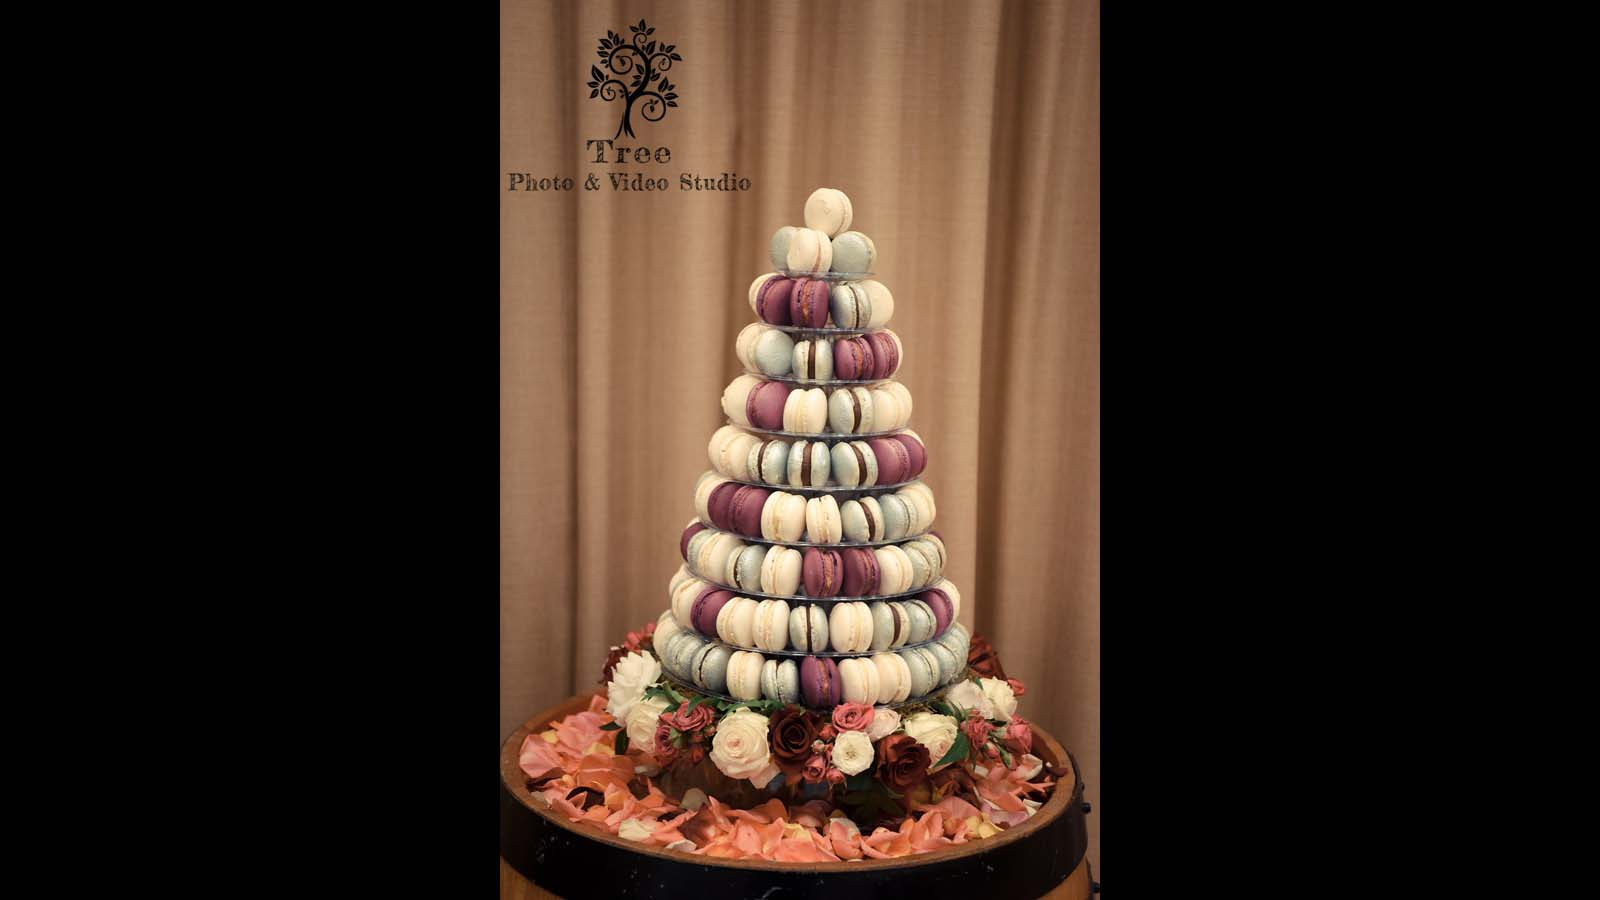 Yarra Vally Balgownie Wedding cake